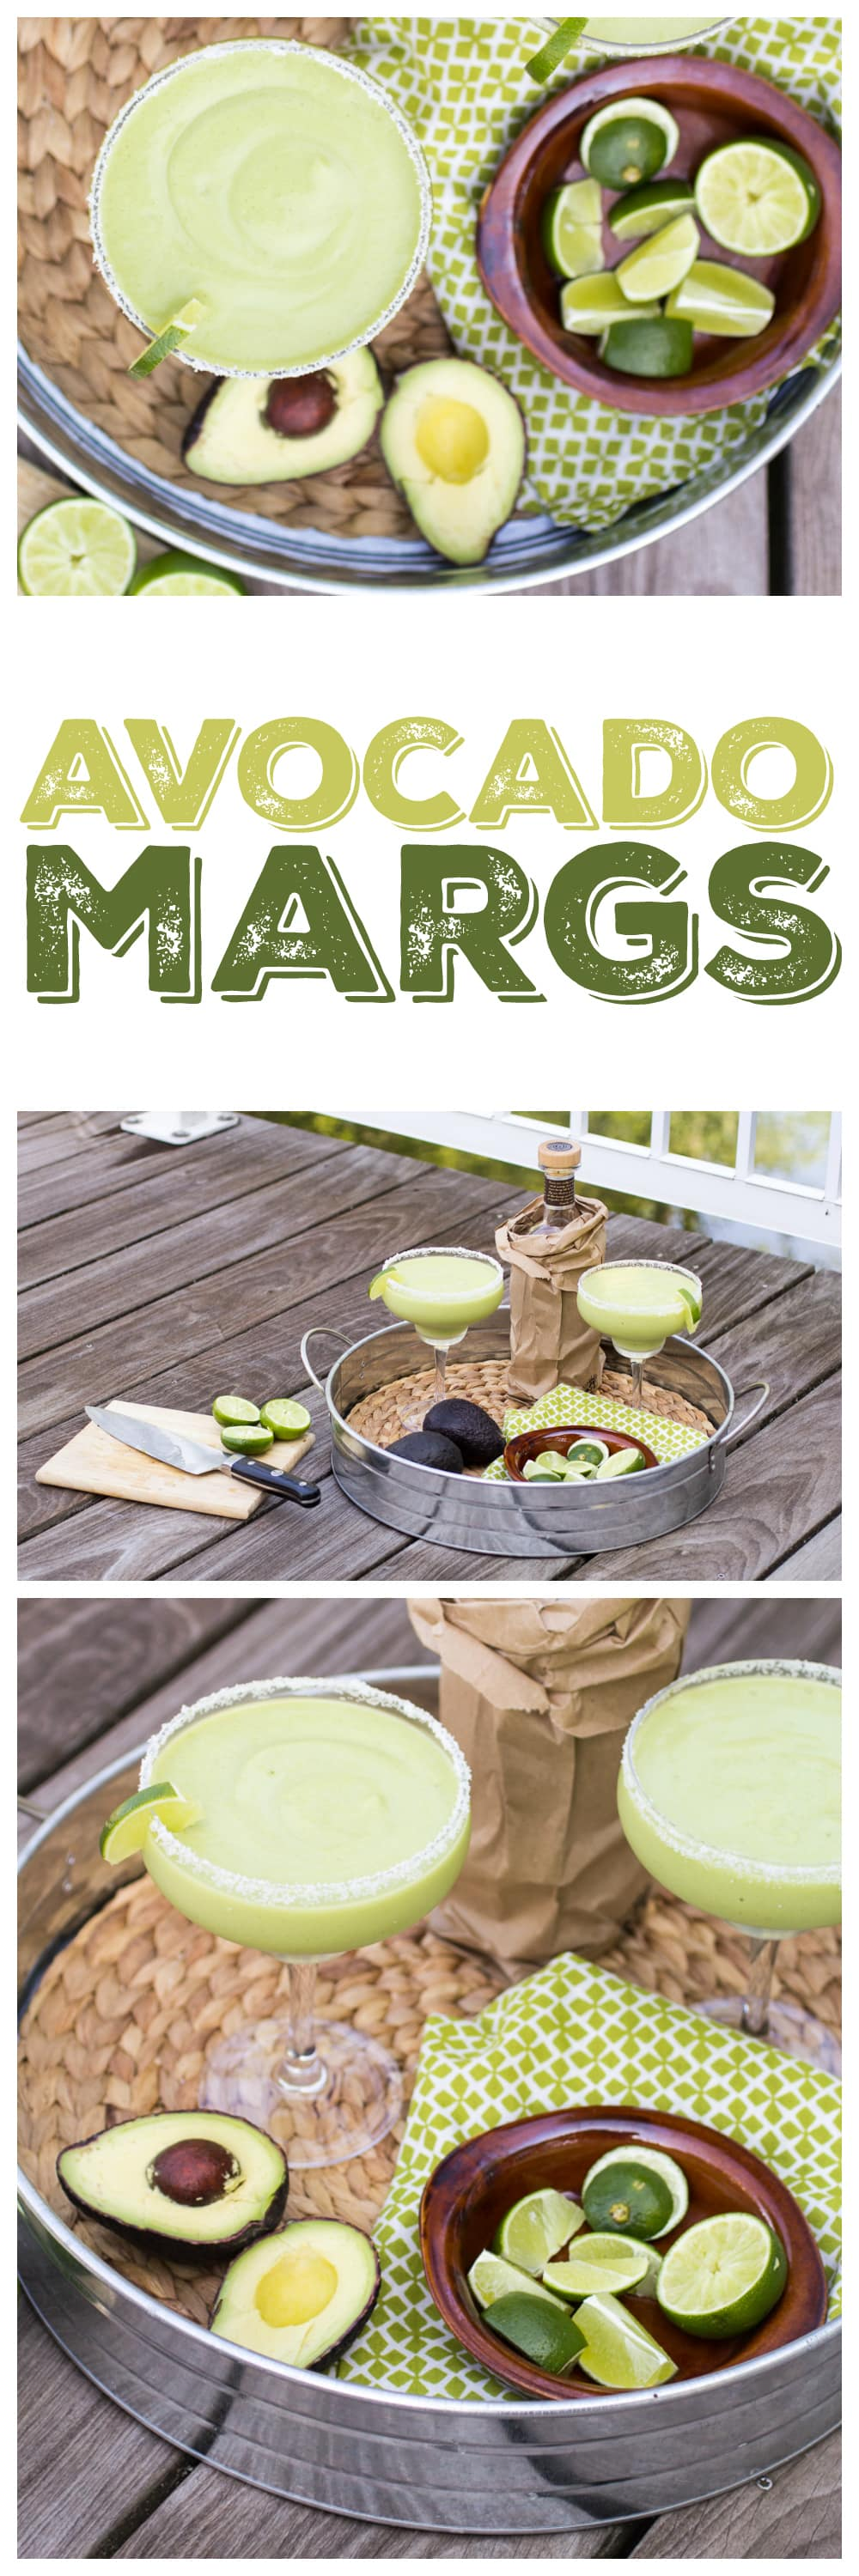 Avocado Margaritas are an unexpected summer treat - whip up a batch and enjoy on the patio!